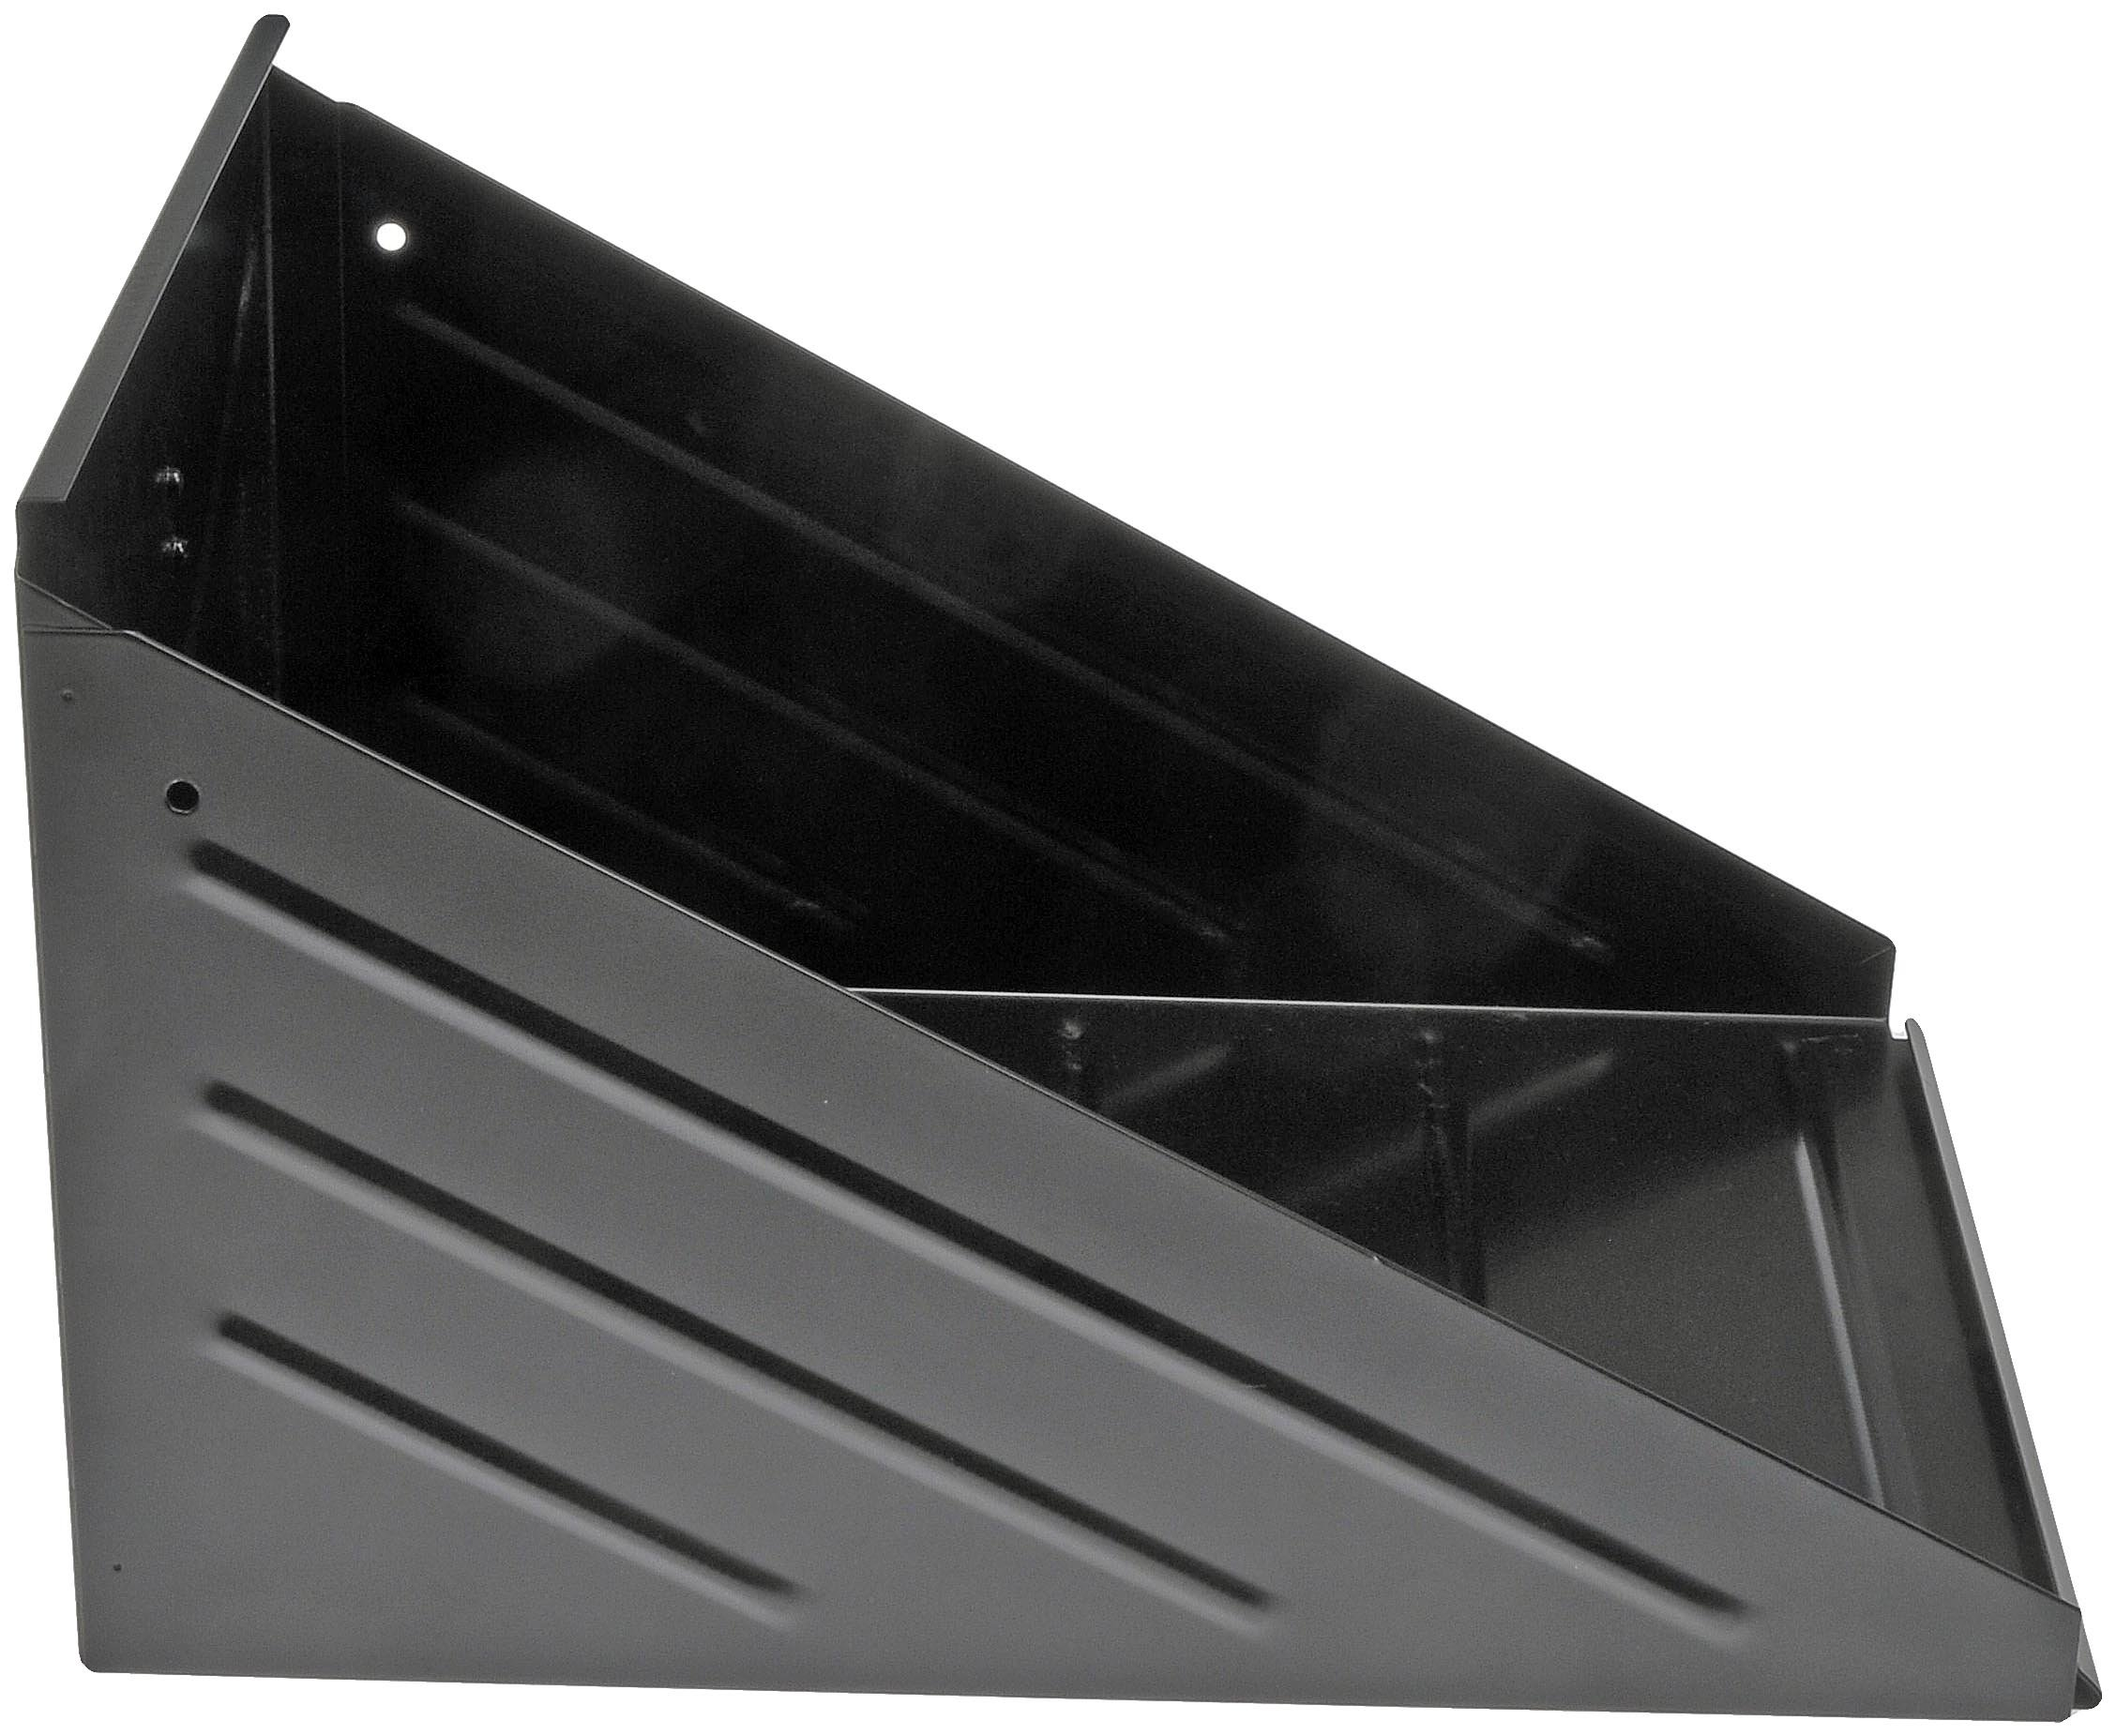 Dorman 242-5526 Battery Box Cover Assembly by Dorman (Image #3)